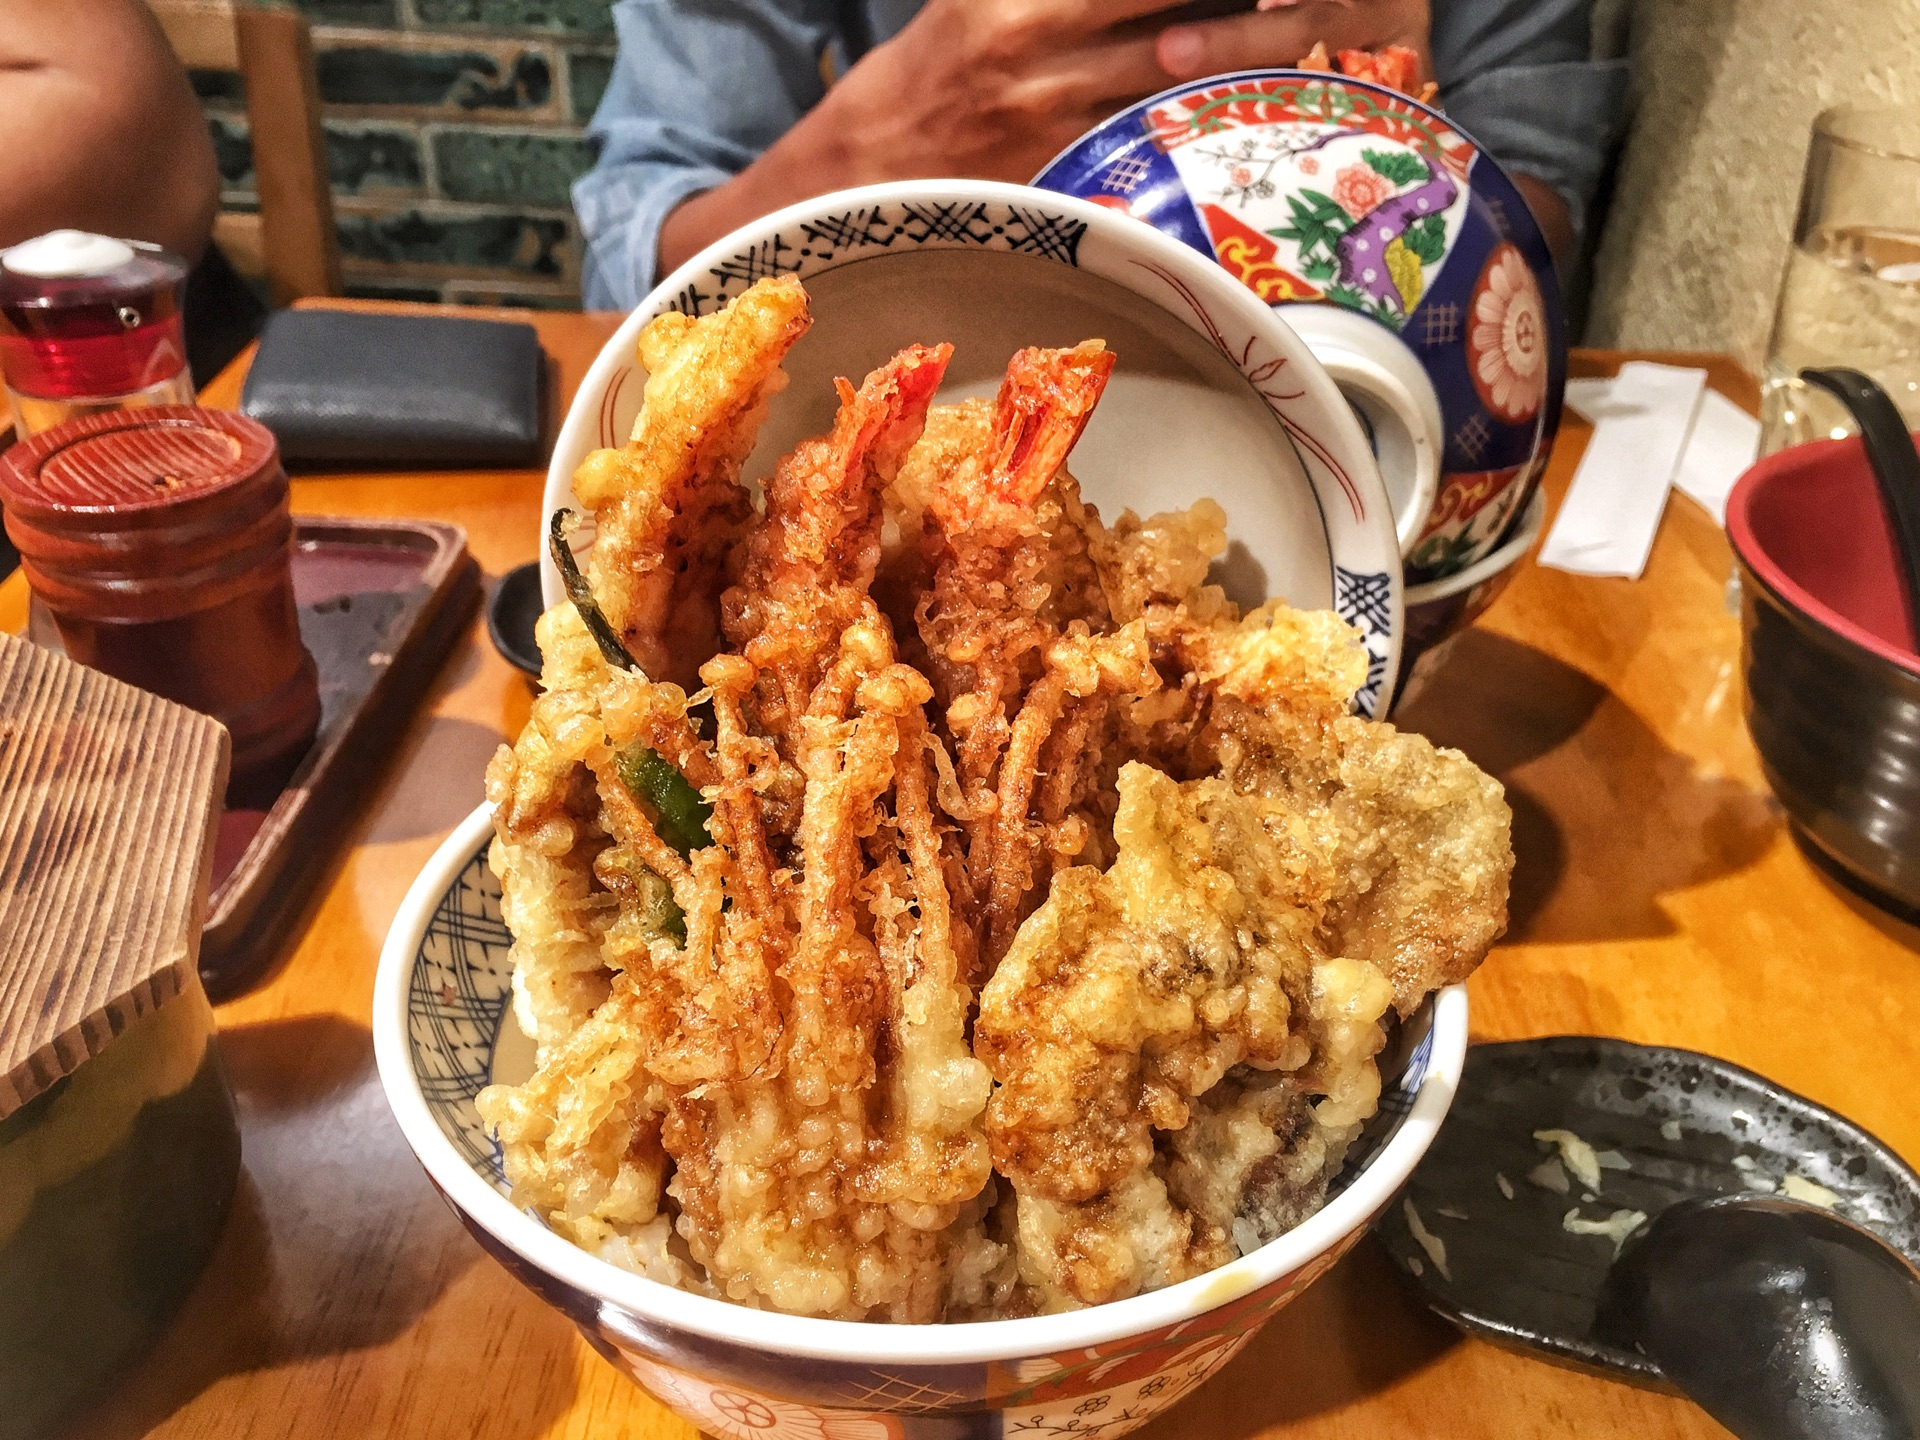 Seasonal Kohaku Tendon (mushroomssss!!)